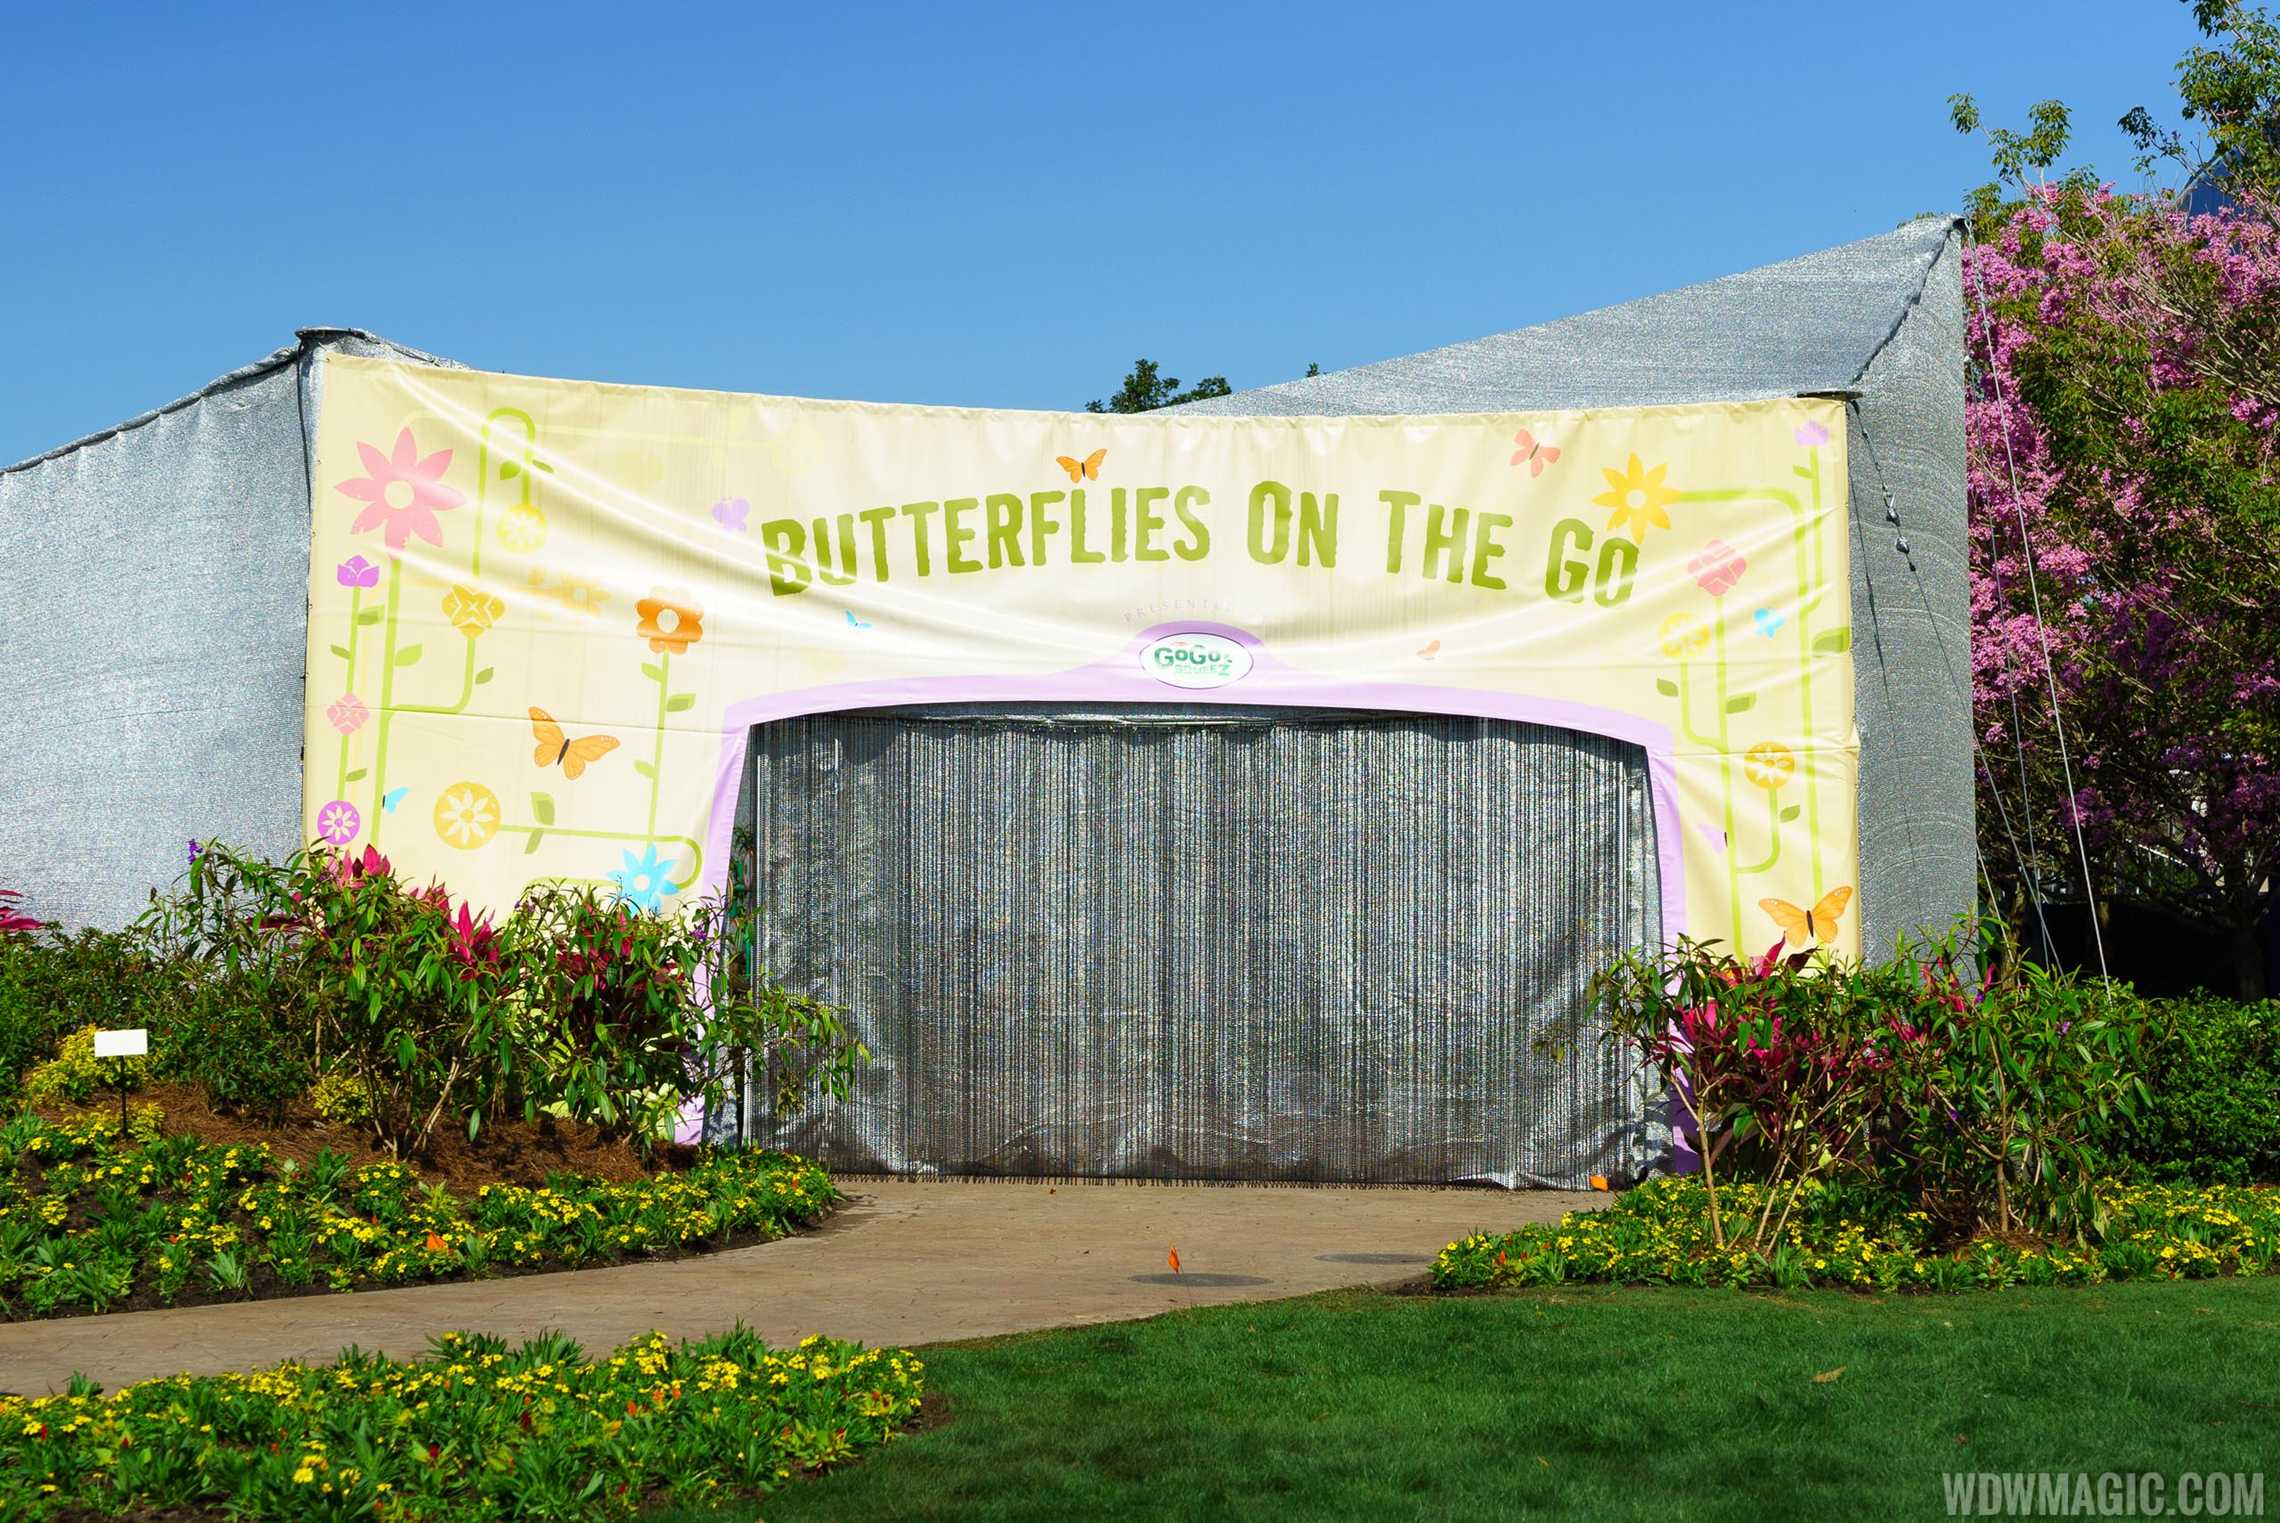 2016 Epcot International Flower and Garden Festival - Butterflies on the Go